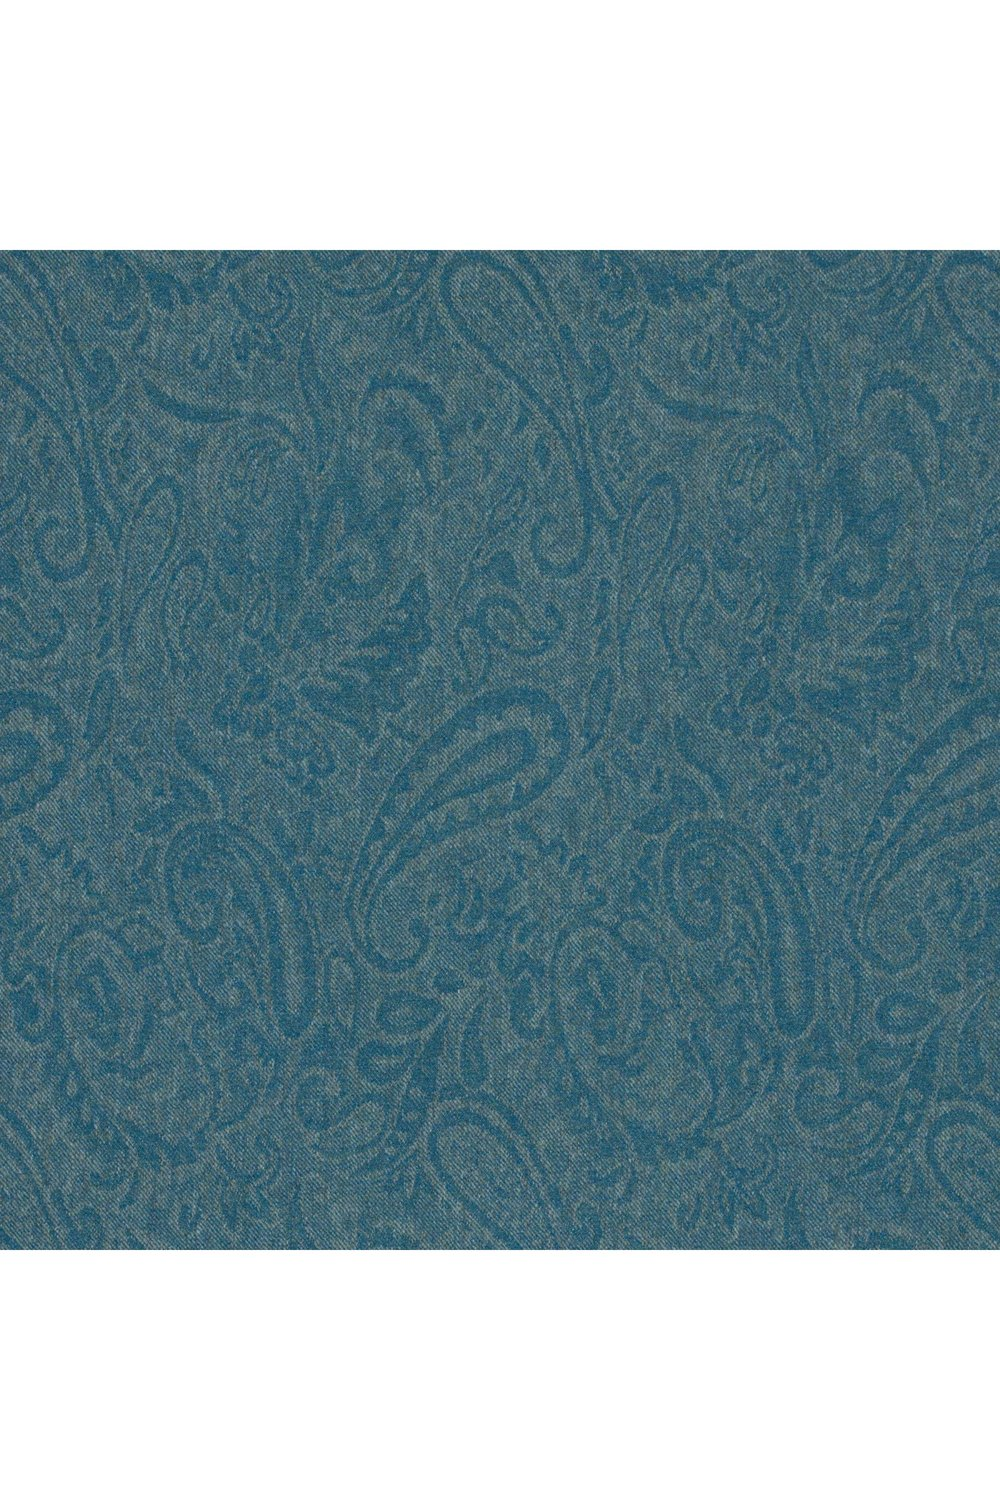 cd000113-ua224411-flotta-teal.jpg